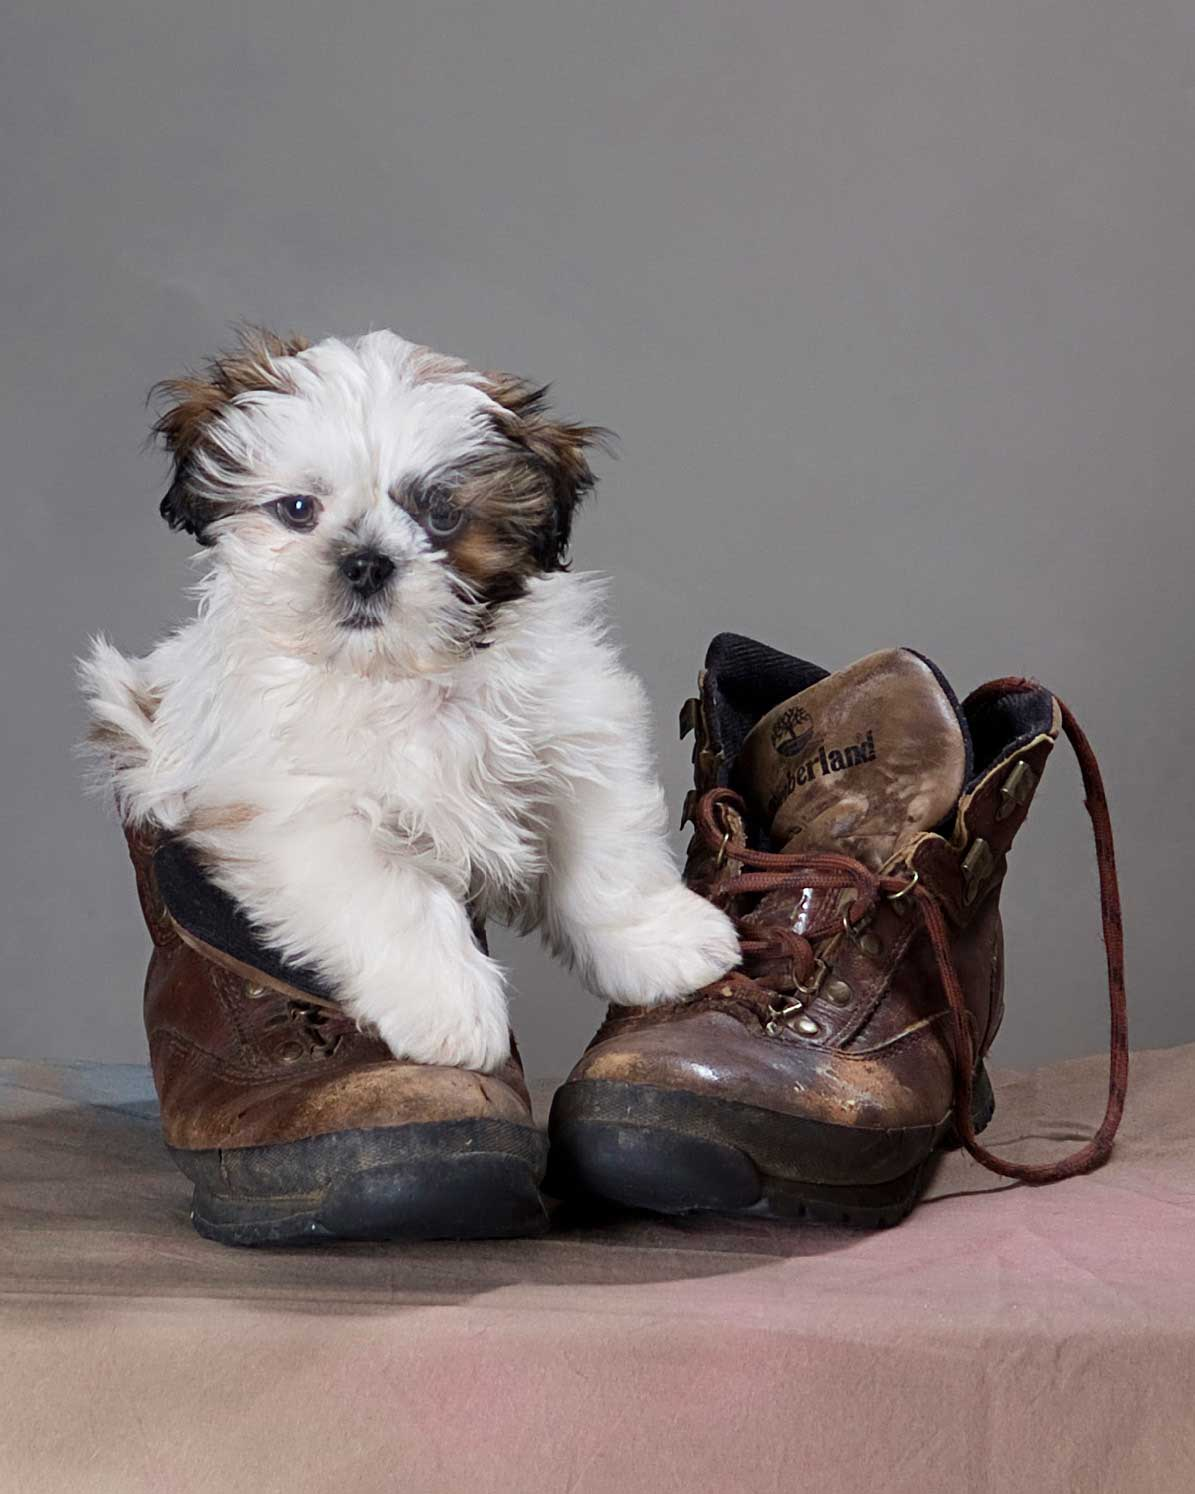 dog in boot photo